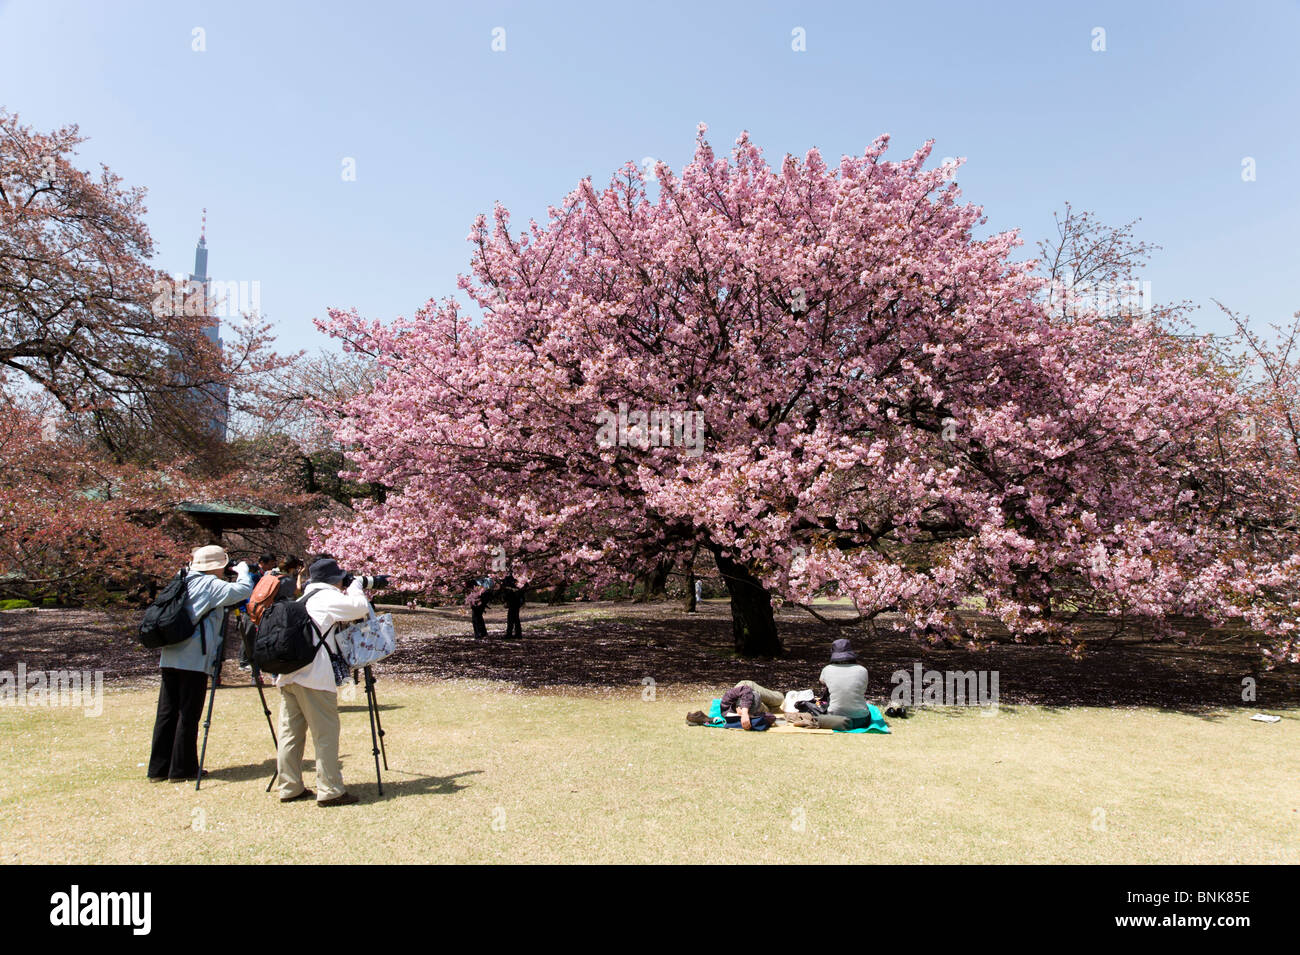 People taking photos of cherry blossom tree in Shinjuku Gyoen, Tokyo, Japan - Stock Image